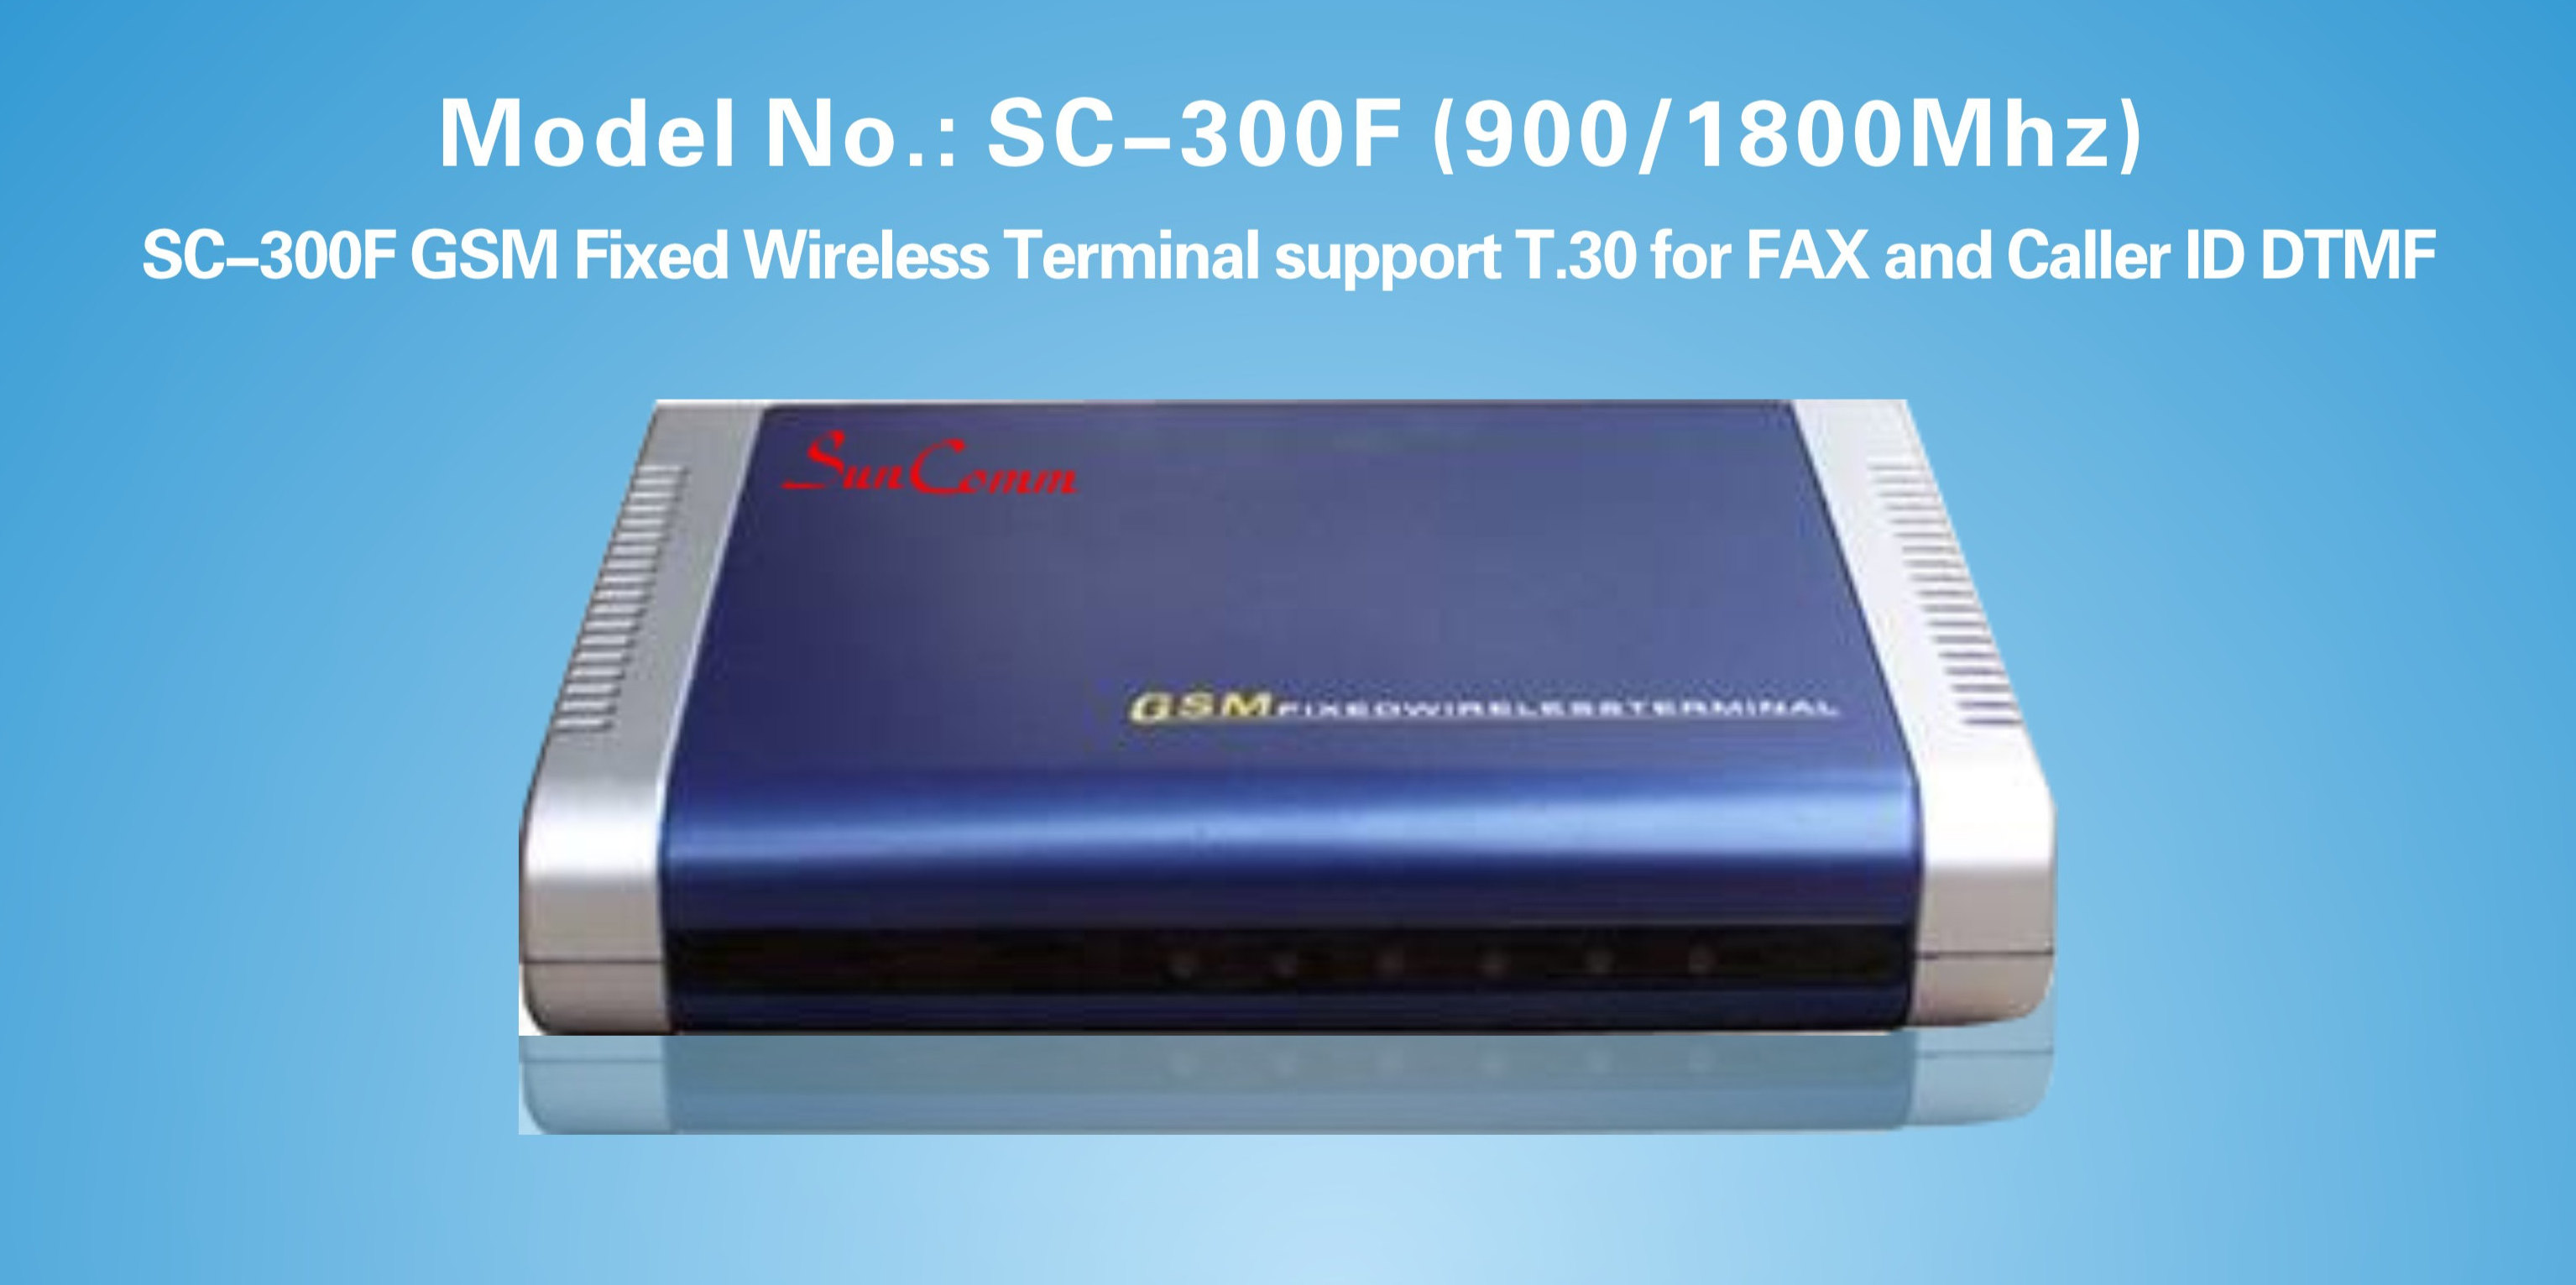 GSM Fixed Wireless Fax Terminal SC-300F